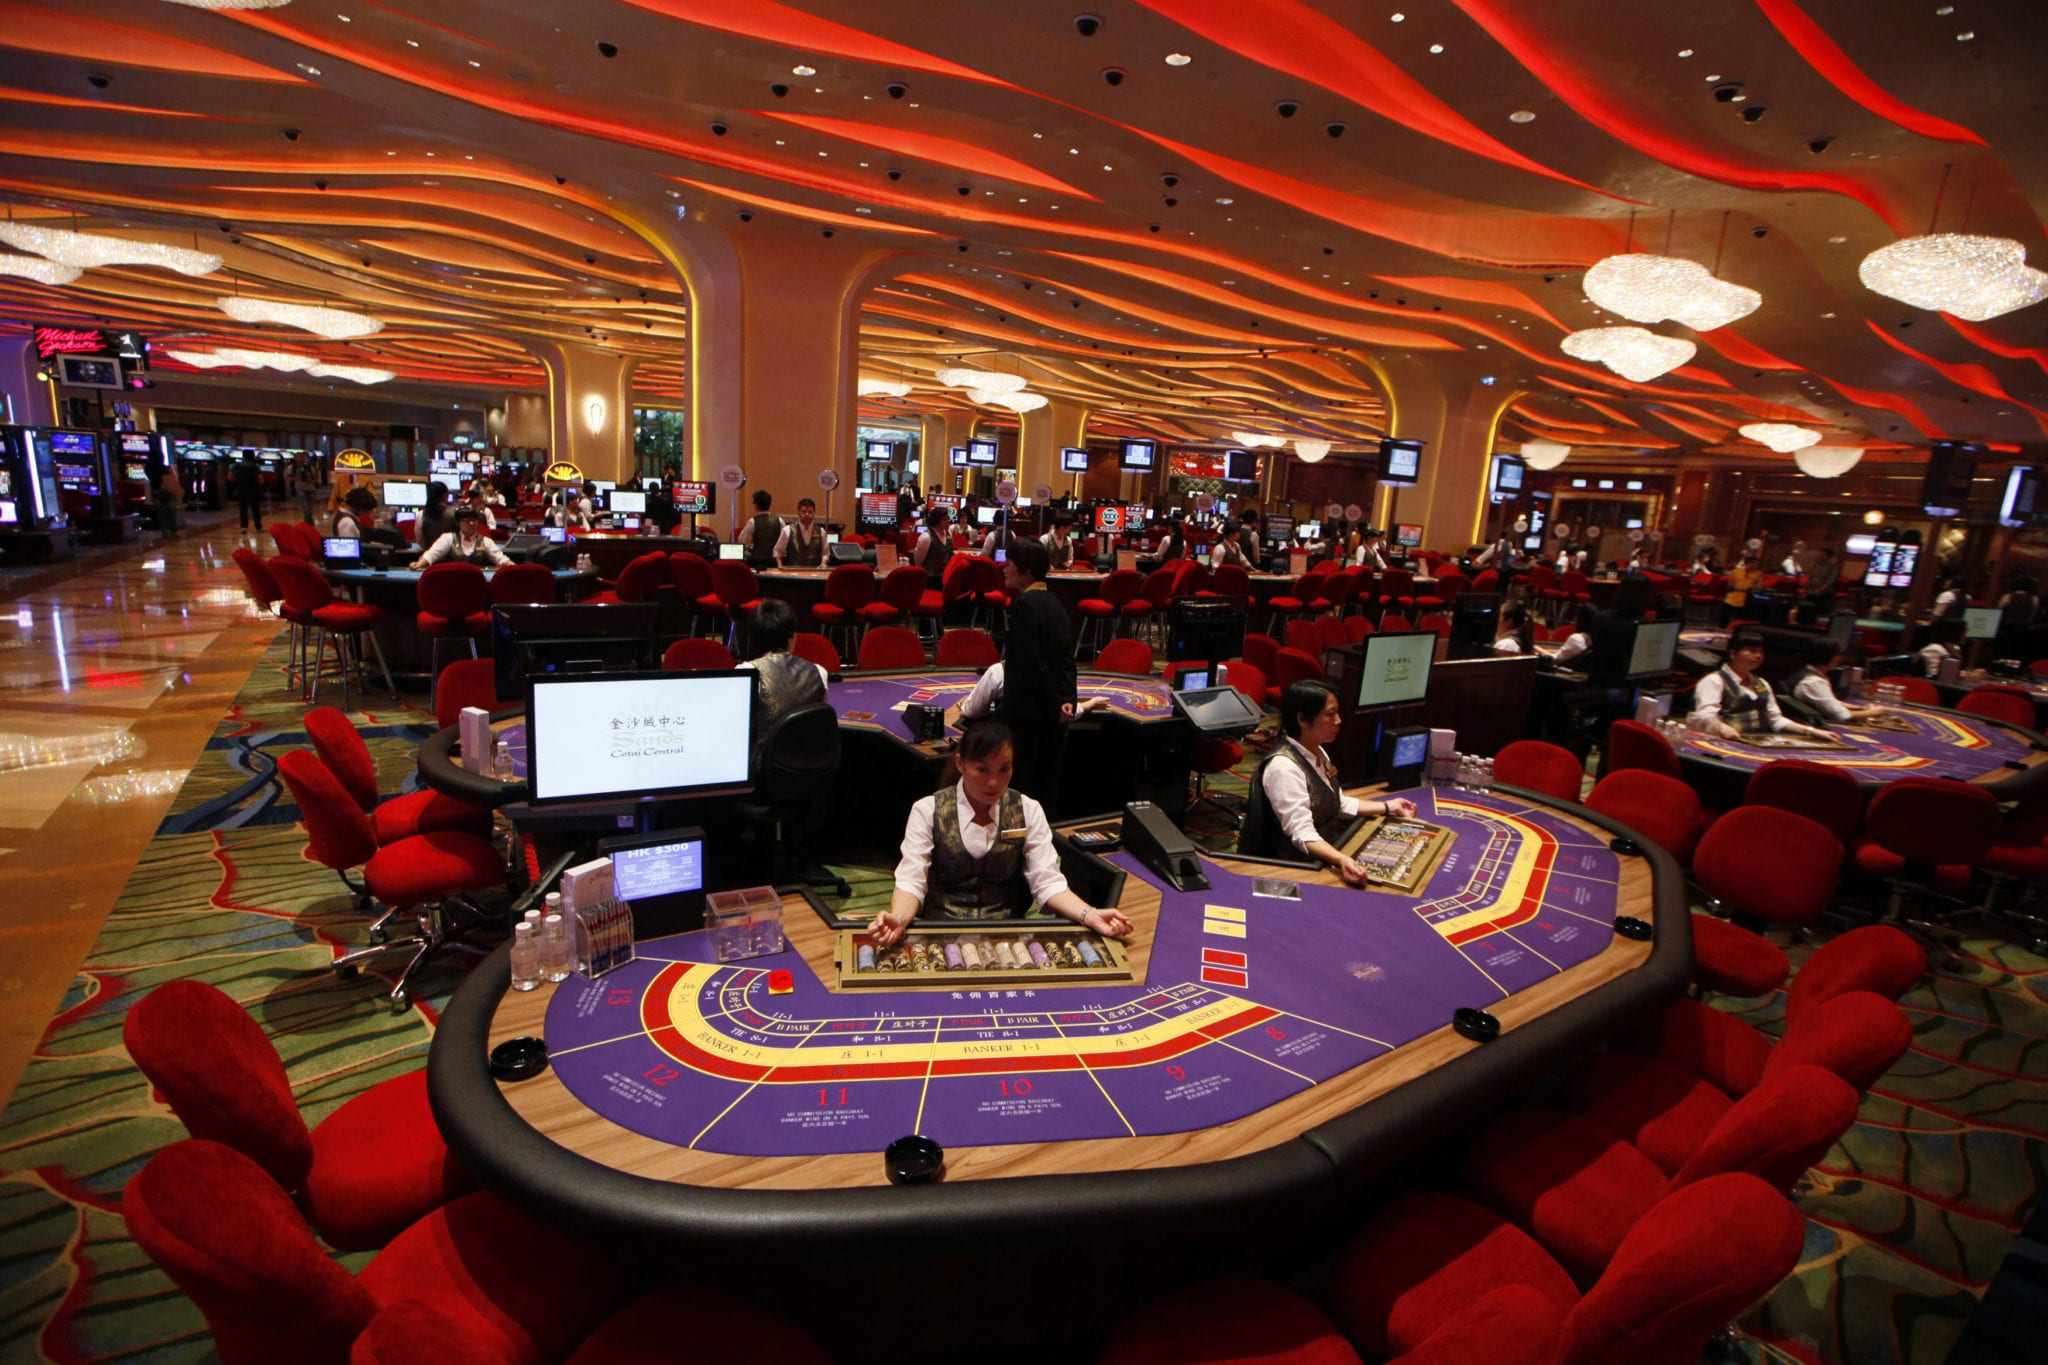 Macau Casino Promotors Generate Over $40 Million in Taxes | Macau Casinos